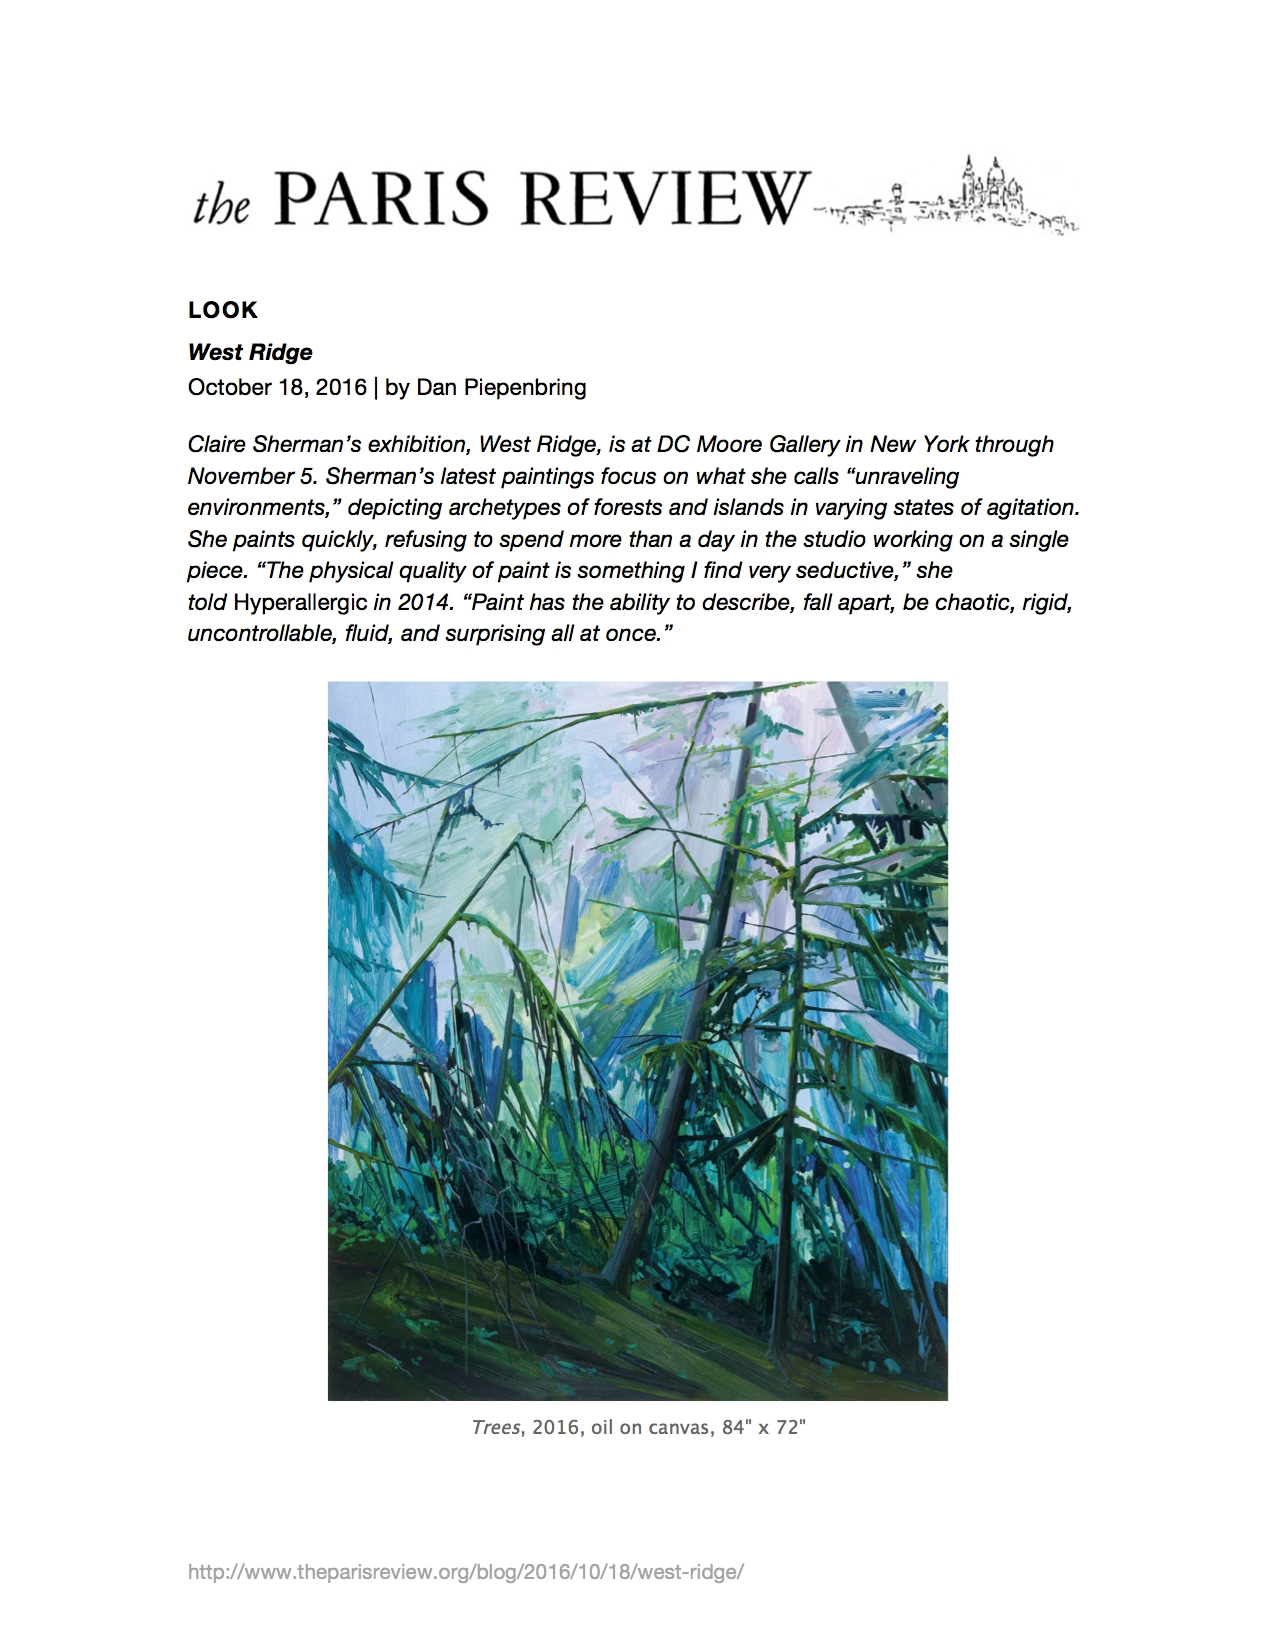 The Paris Review, October 2016